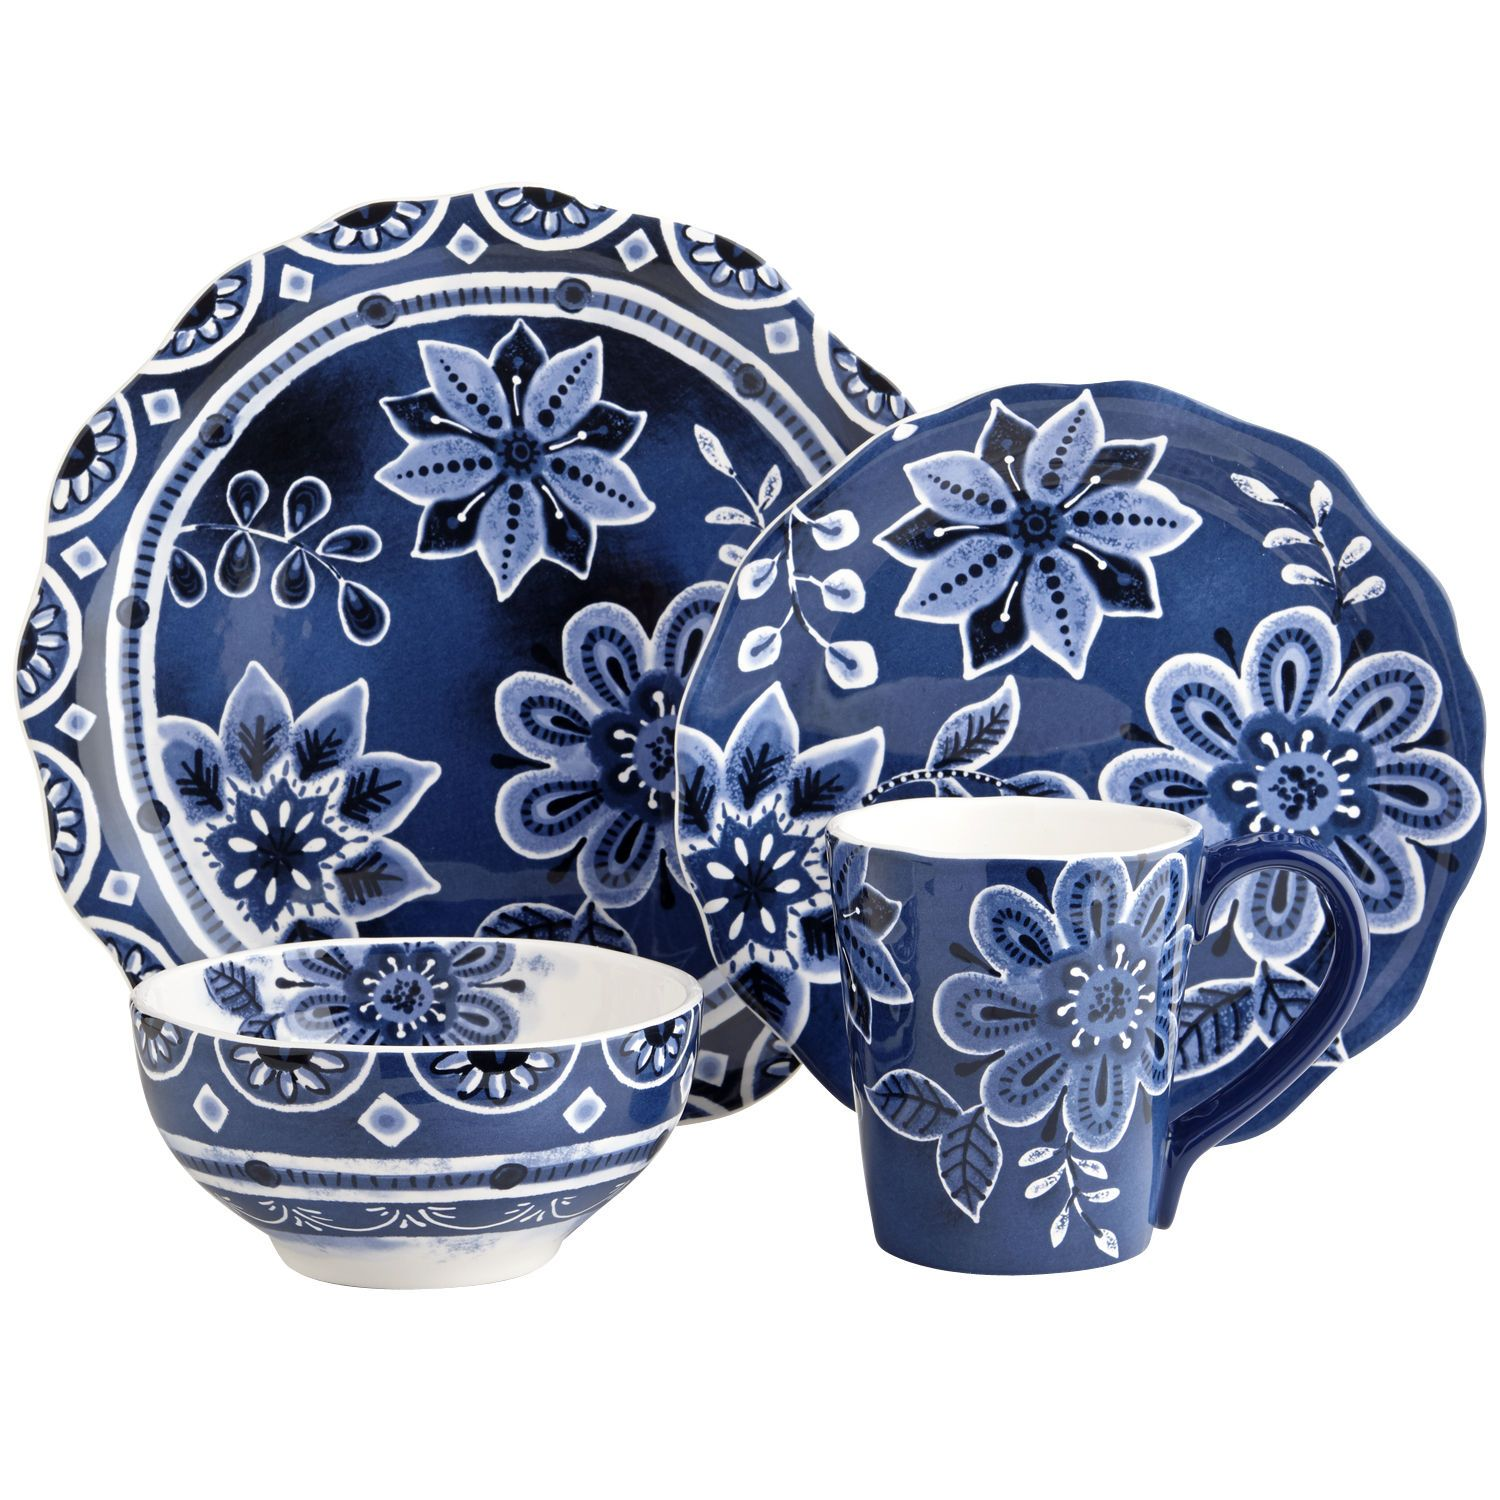 Indigo Floral Dinnerware | Beautiful things | Pinterest ...